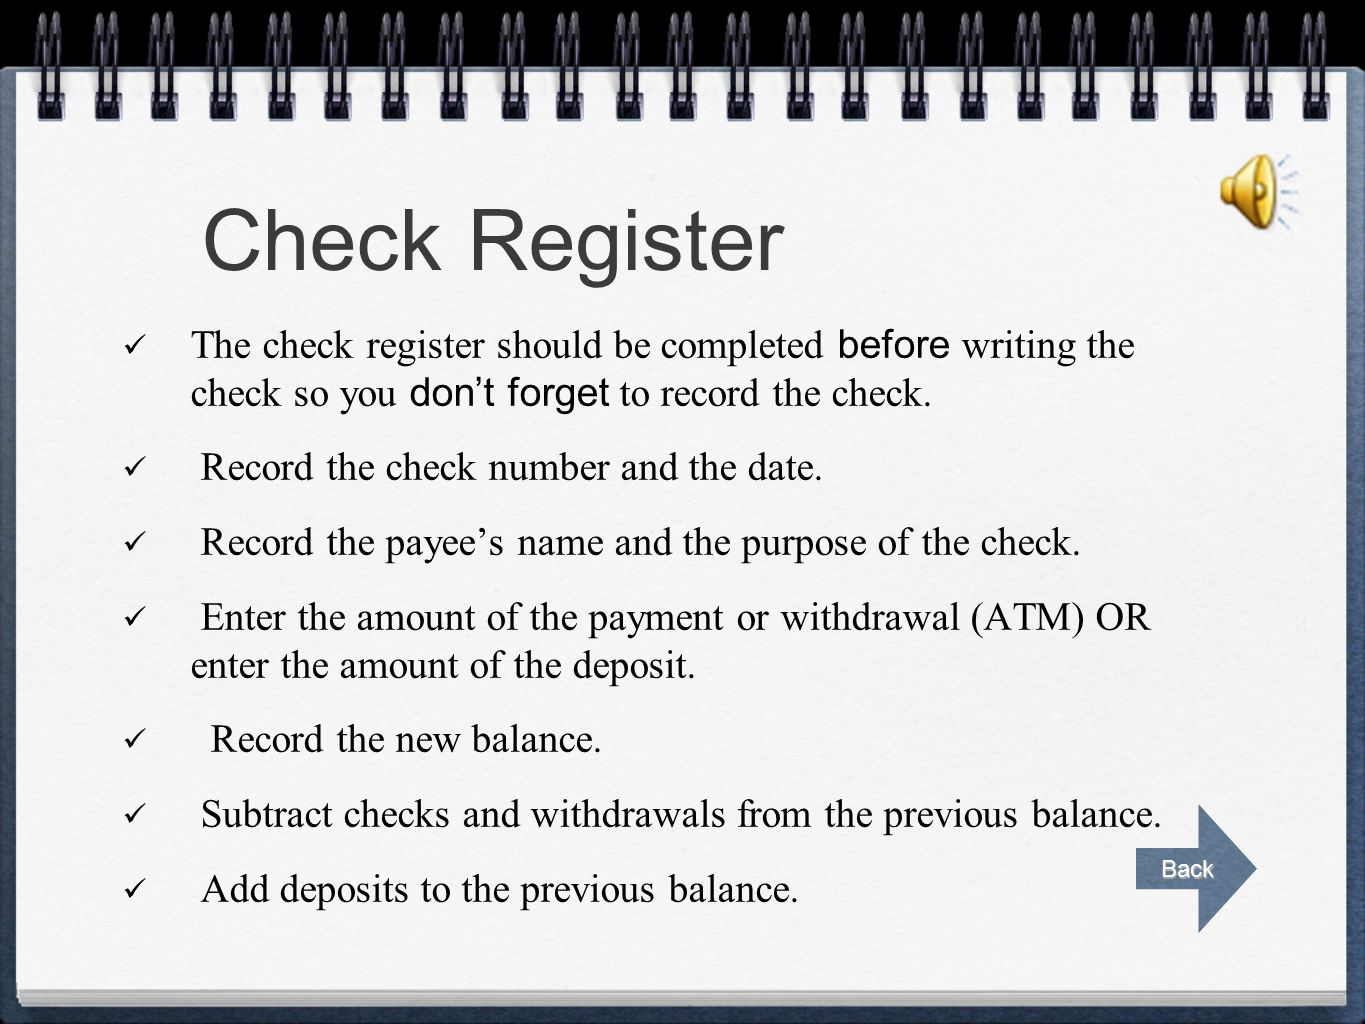 Check Register The check register should be completed before writing the check so you don't forget to record the check.